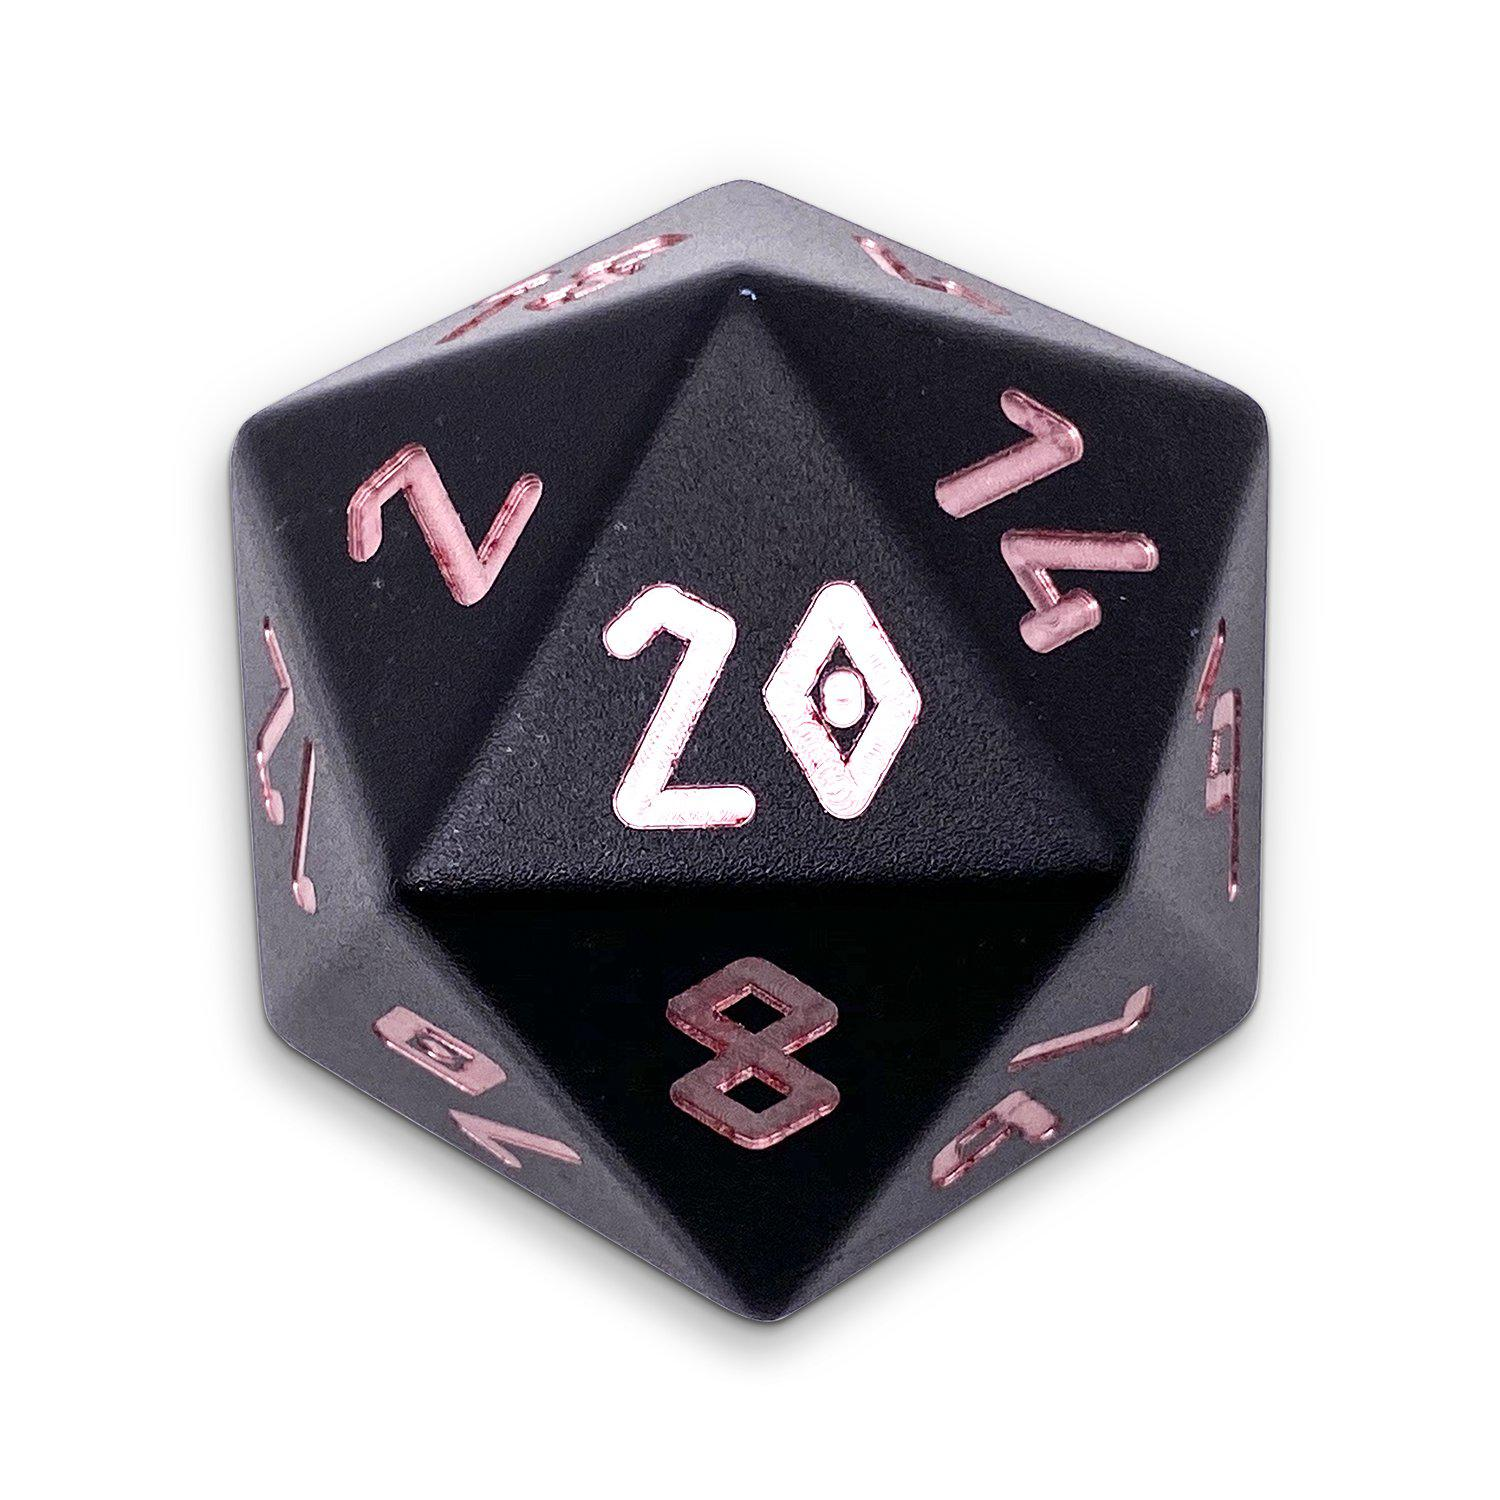 Orb of Annihilation - Wondrous Boulder® 55mm D20 6063 Aircraft Grade Aluminum Metal Die